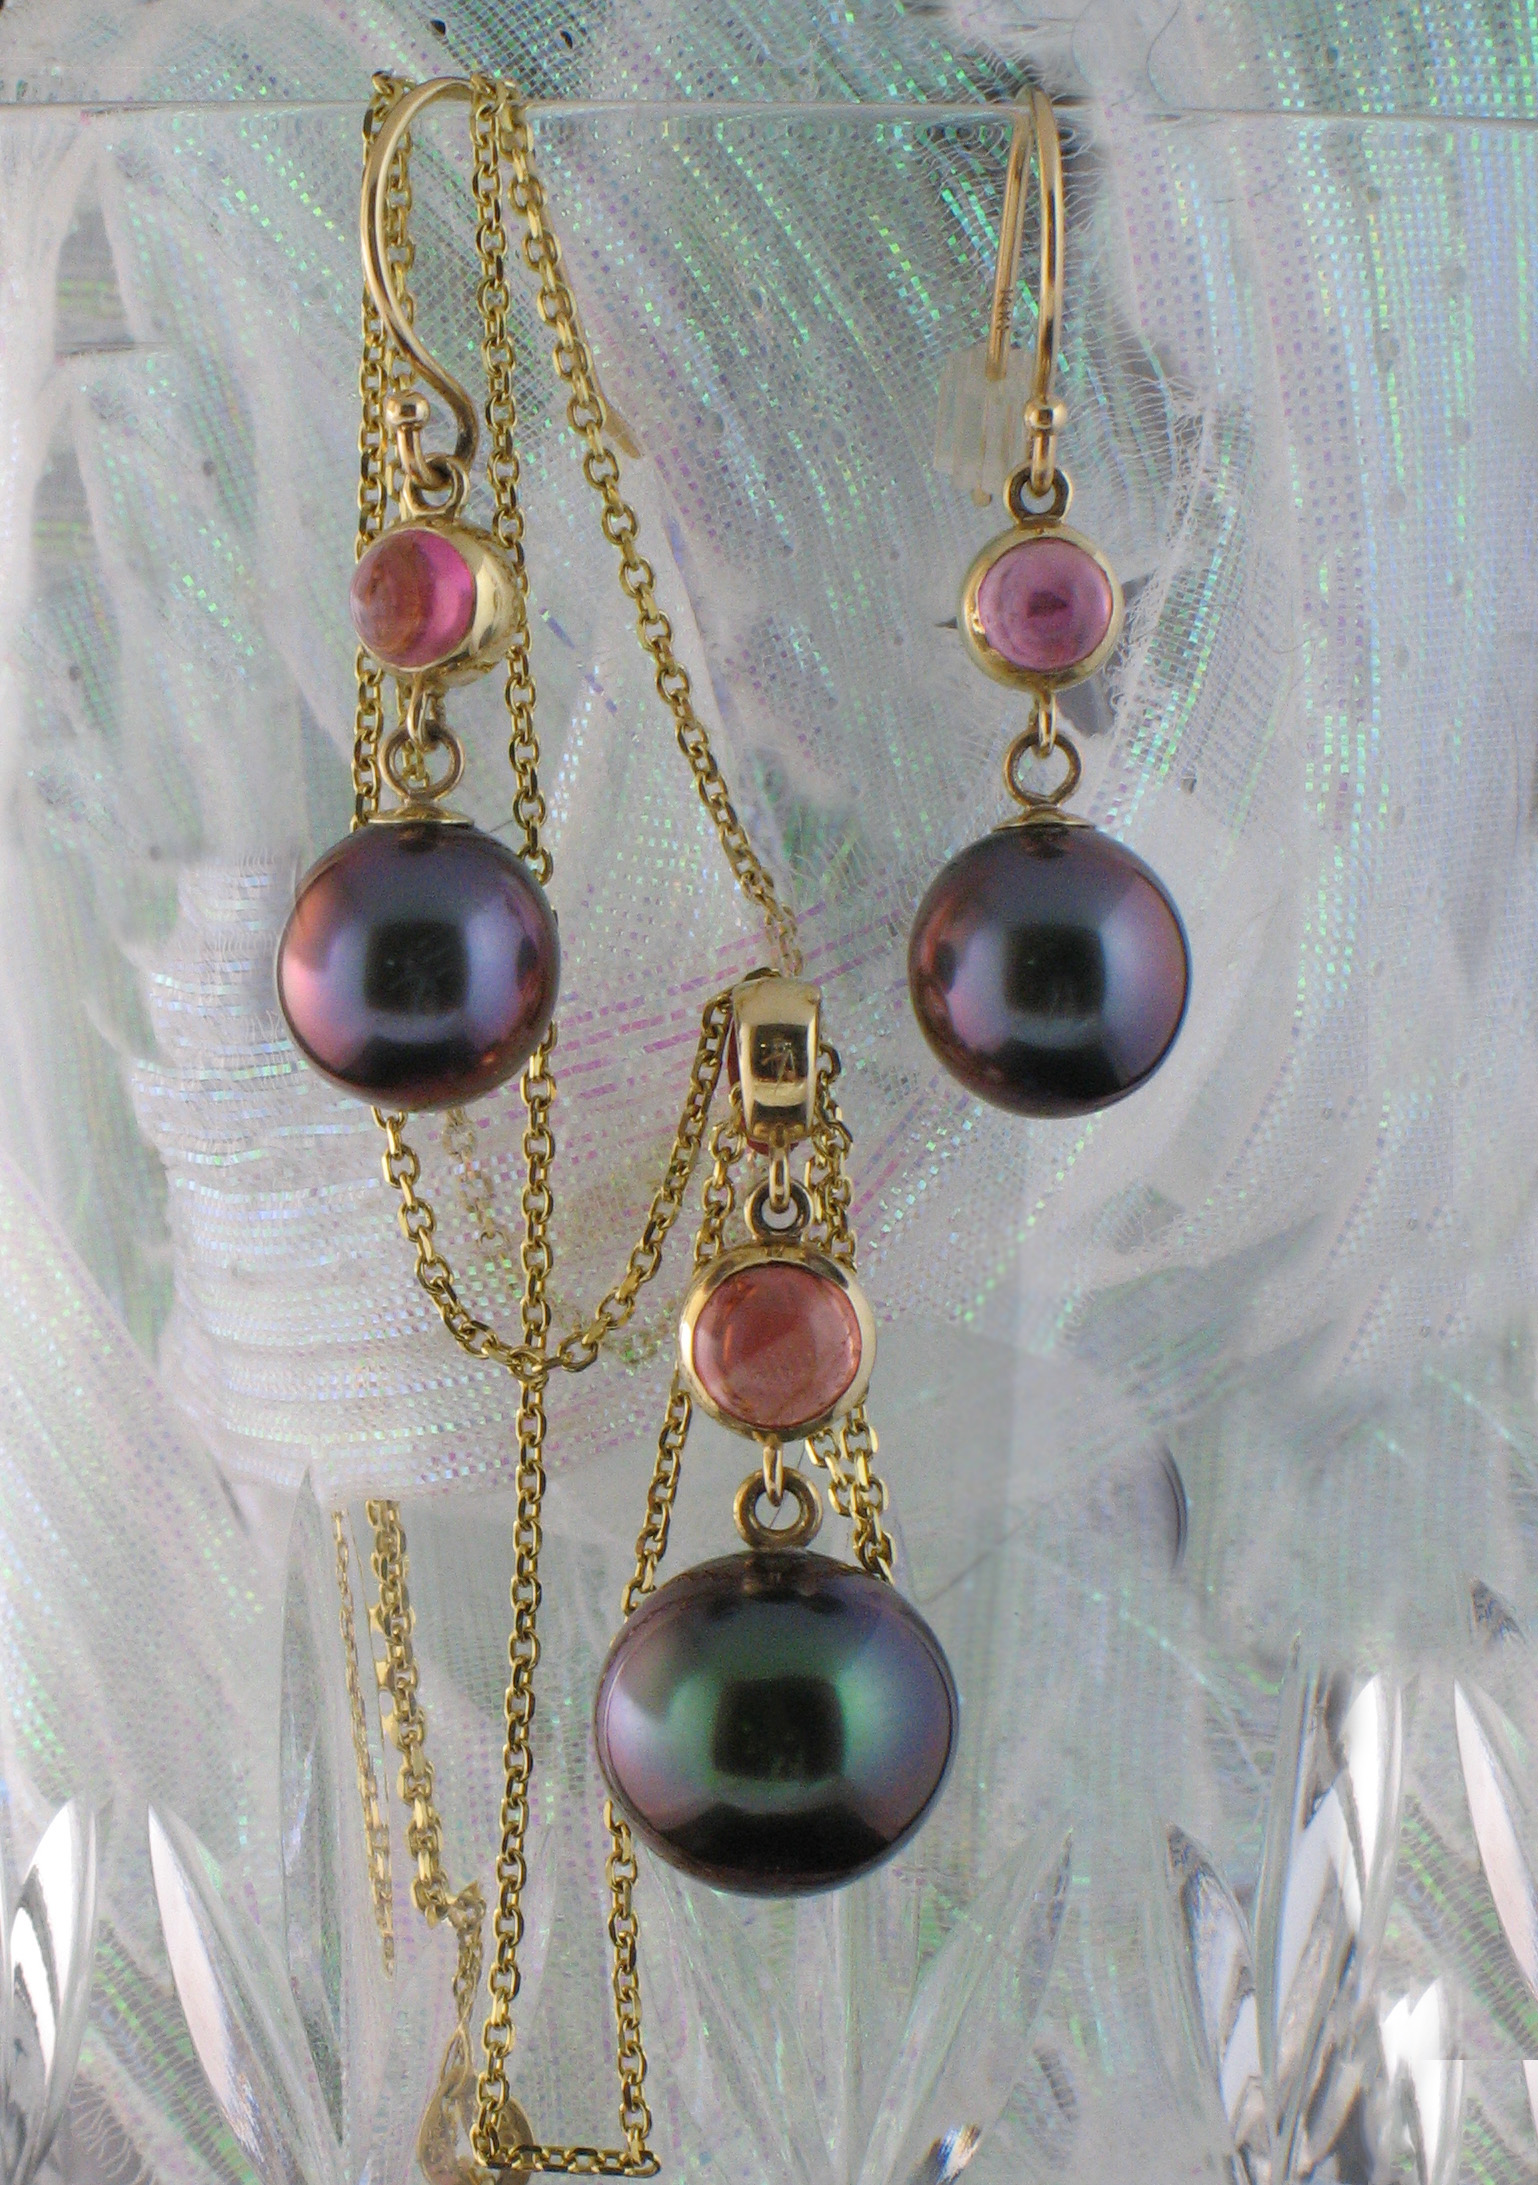 Tahitian Pearl Earrings with Tourmaline Accent